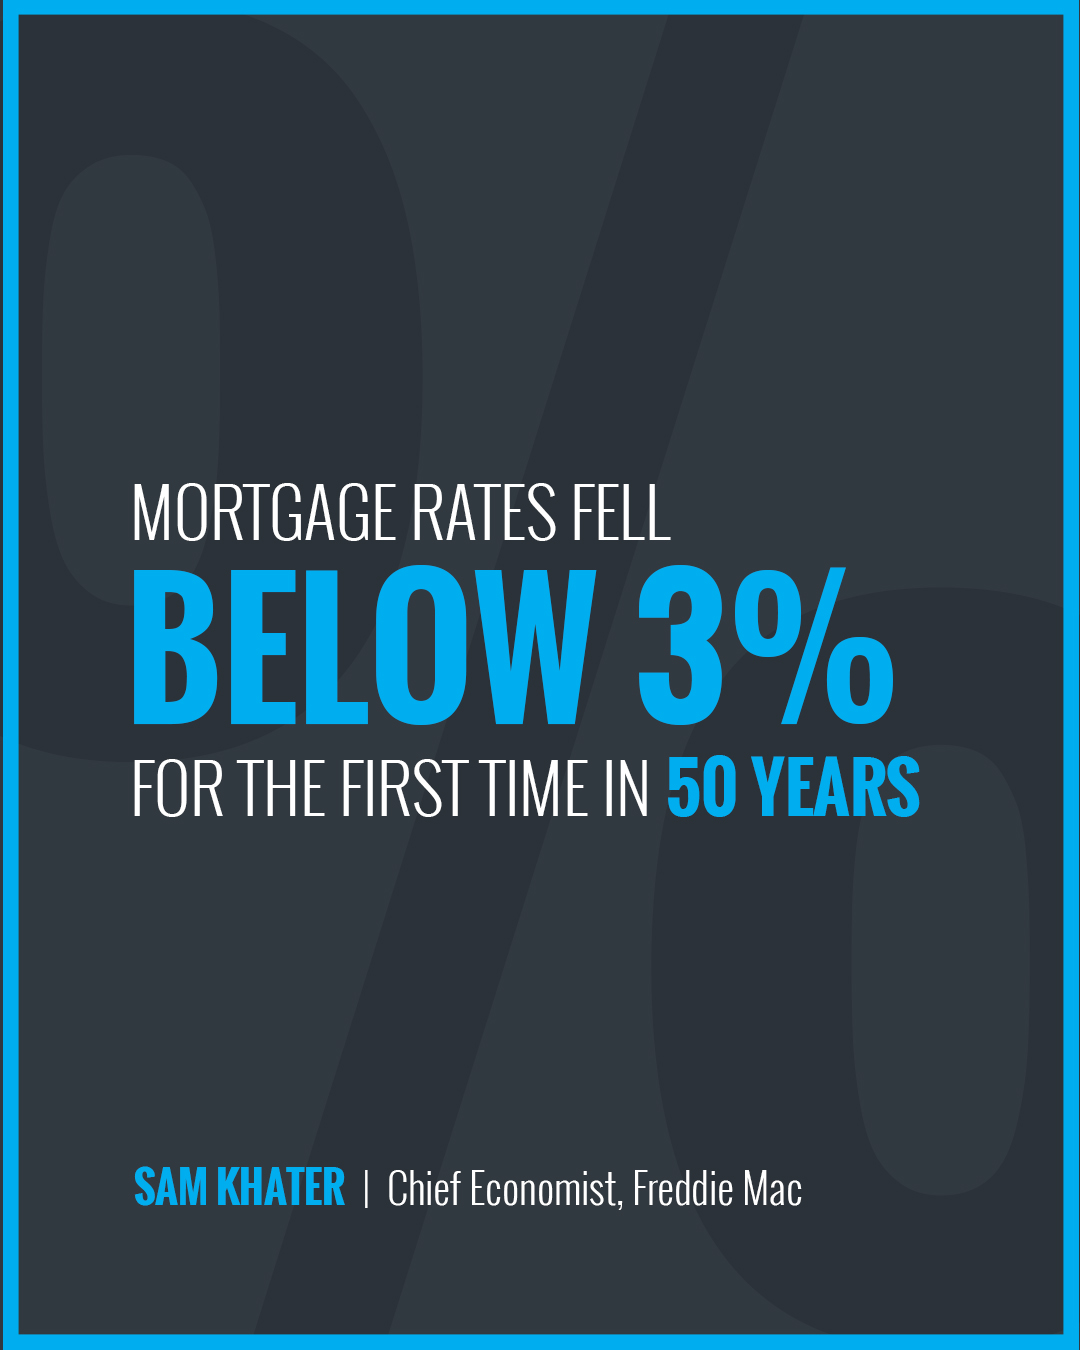 Mortgage Rates Fall Below 3% [INFOGRAPHIC] <spinbar data-recalc-dims=